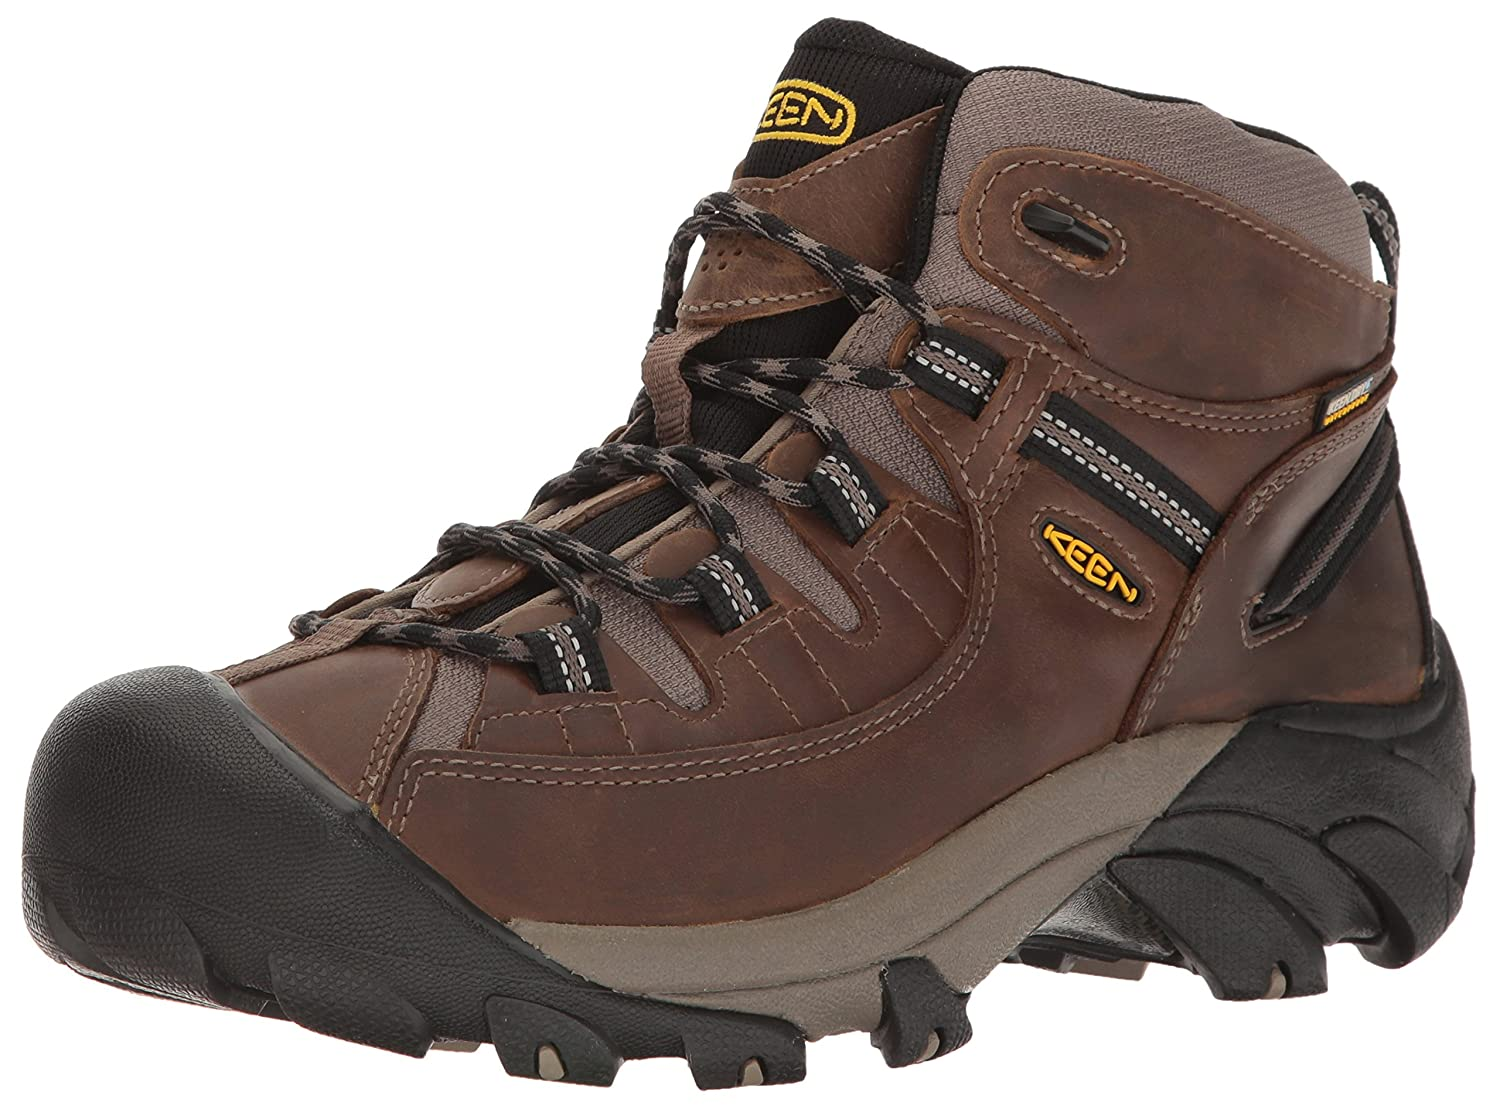 KEEN Men's Targhee II Mid Wide Hiking Shoe Keen - US Shoes Targhee II Mid Wide-M